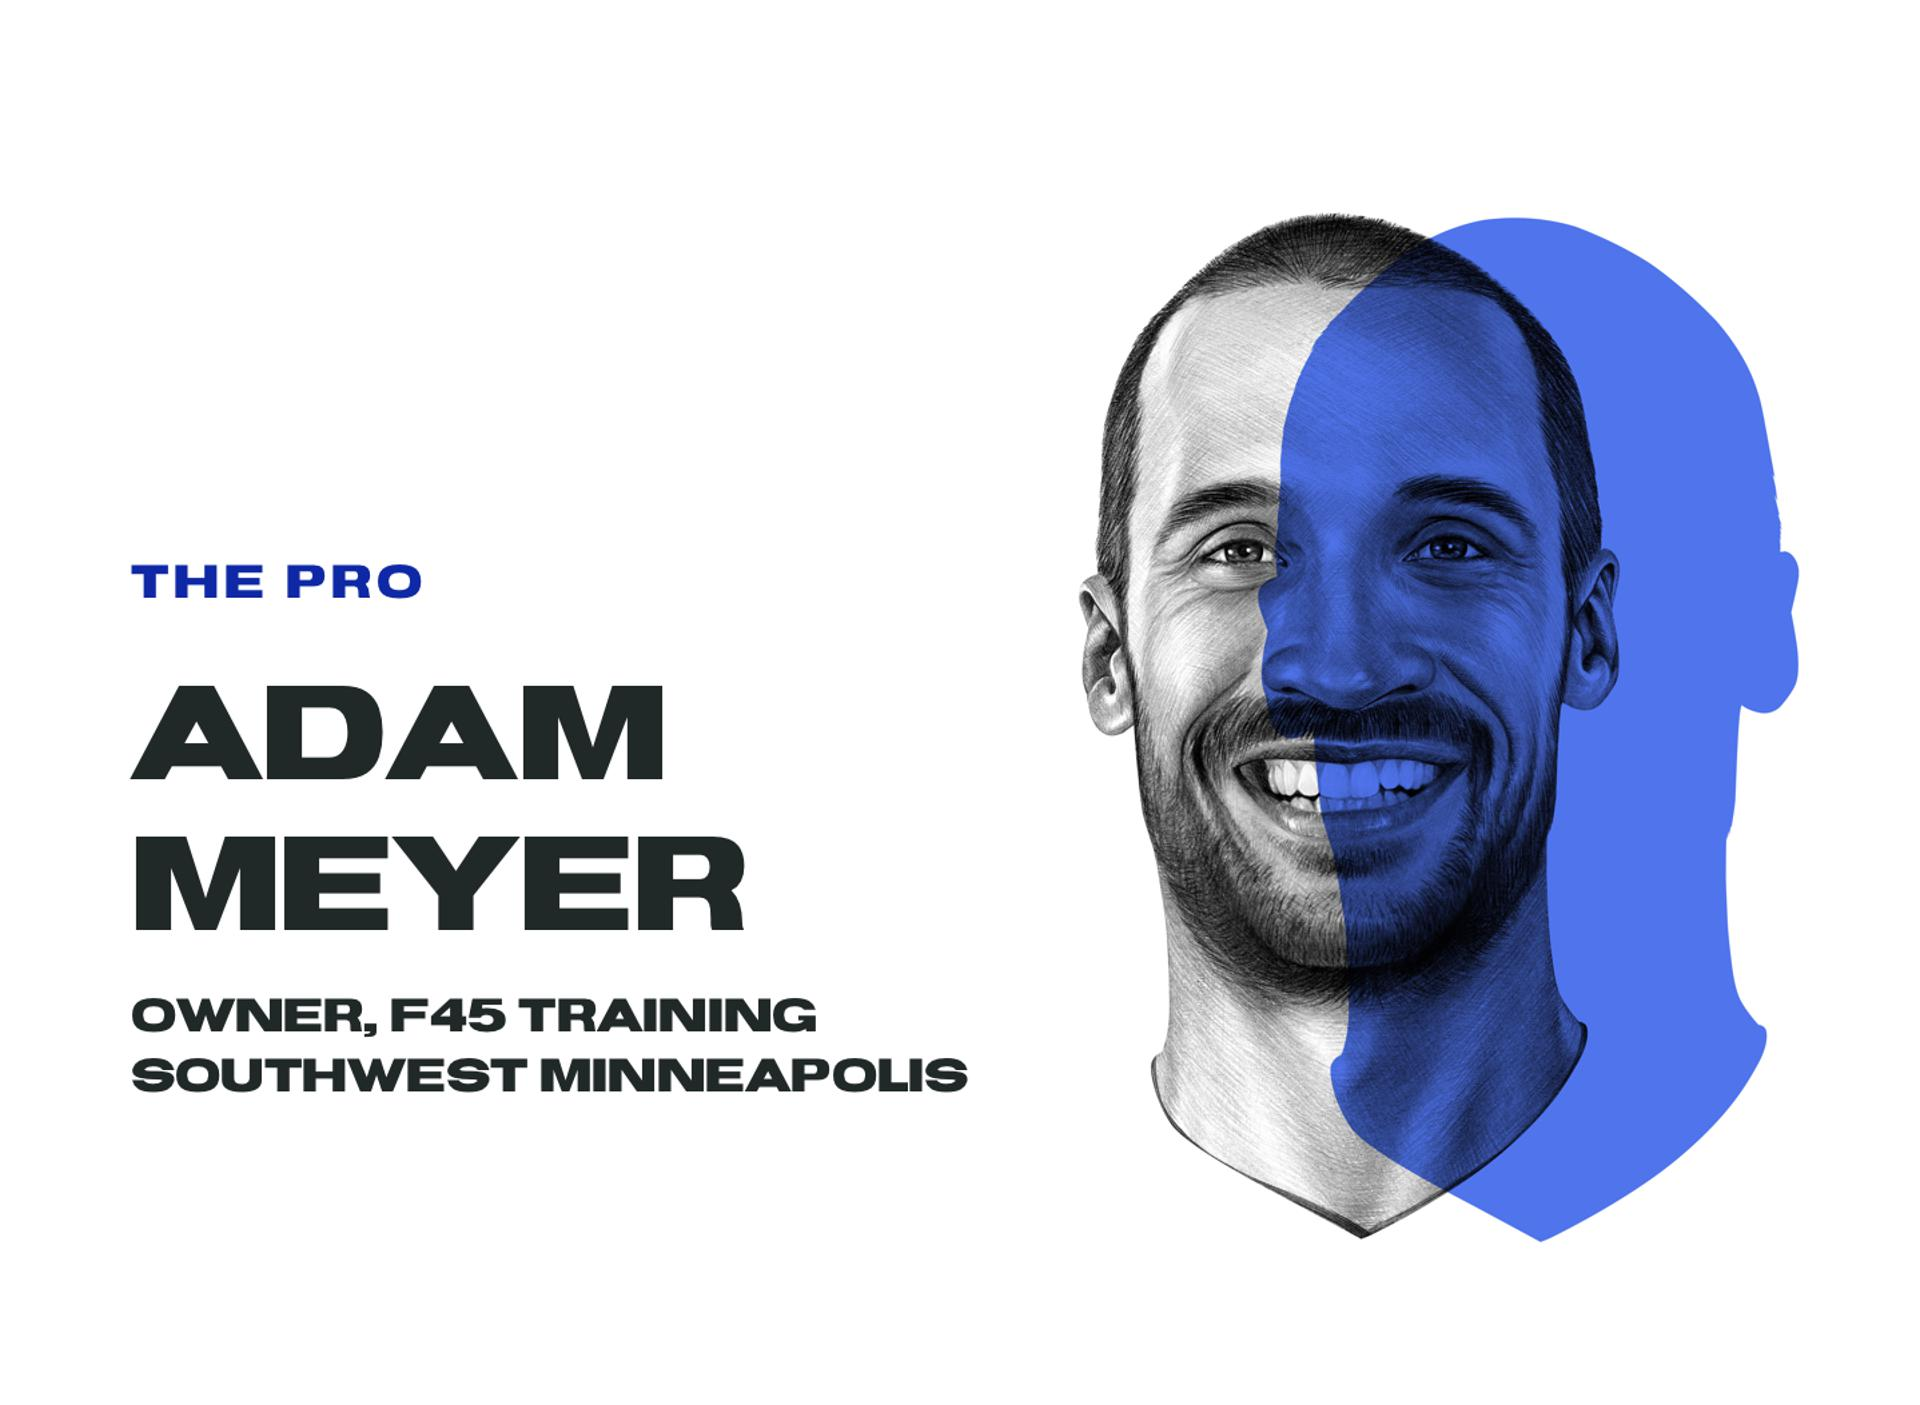 The Pro, Adam Meyer, owner, F45 training Southwest Minneapolis